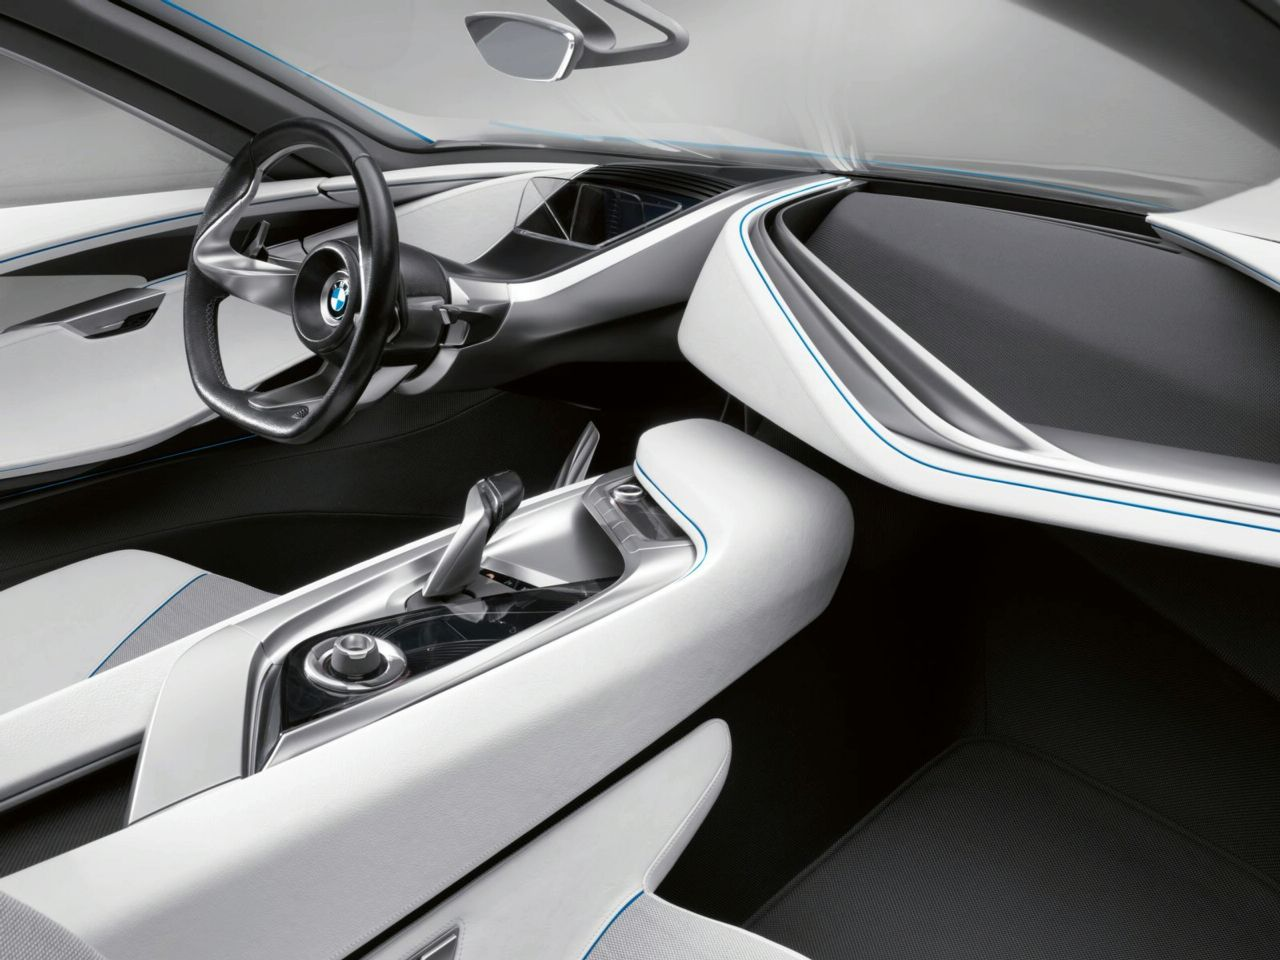 bmw vision efficienctdynamics concept interior img 19 it s your auto world new cars auto. Black Bedroom Furniture Sets. Home Design Ideas